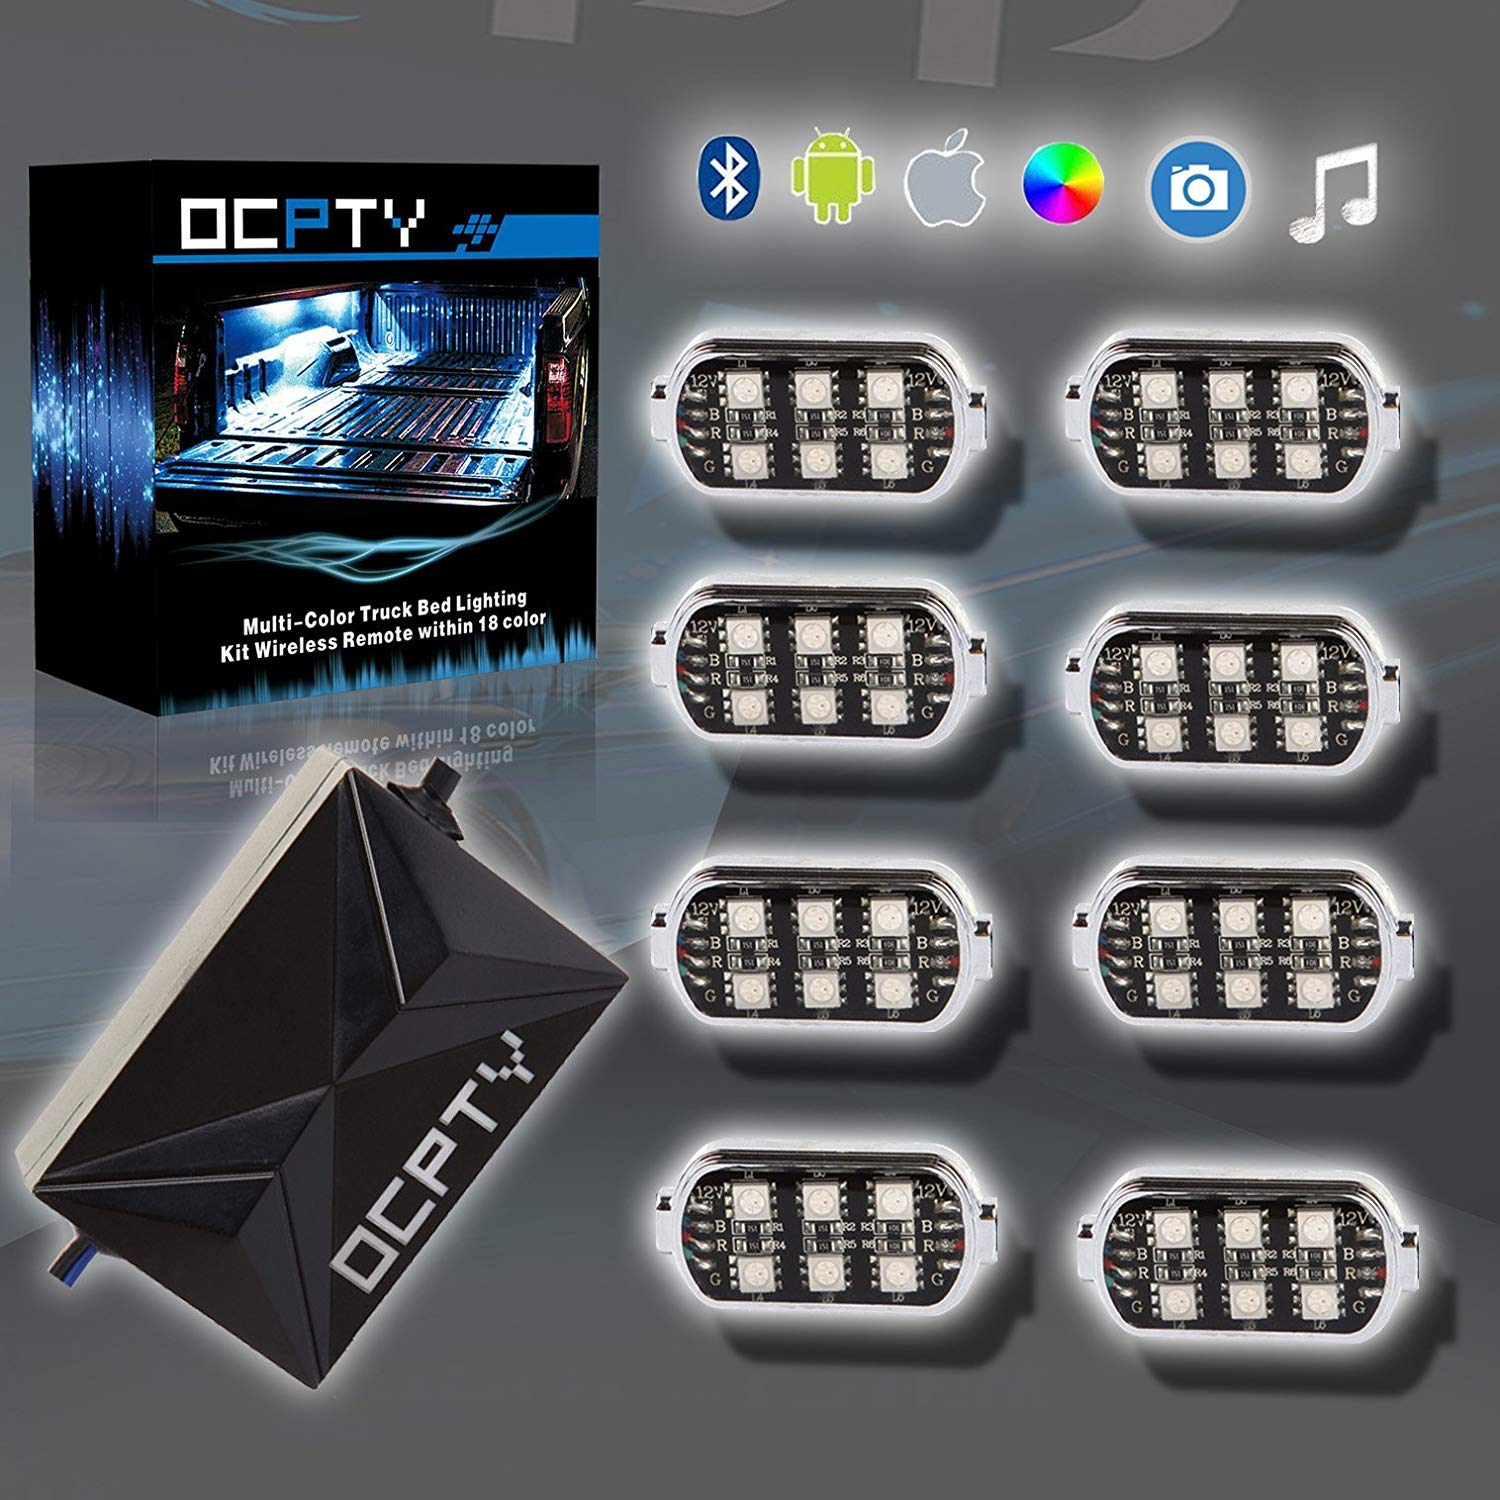 OCPTY 8 pods LED Truck Bed Light Kit Universal RGB Led Rock Light Sound  Activated Camera Function Wireless Remote Bluetooth Controller Waterproof  for